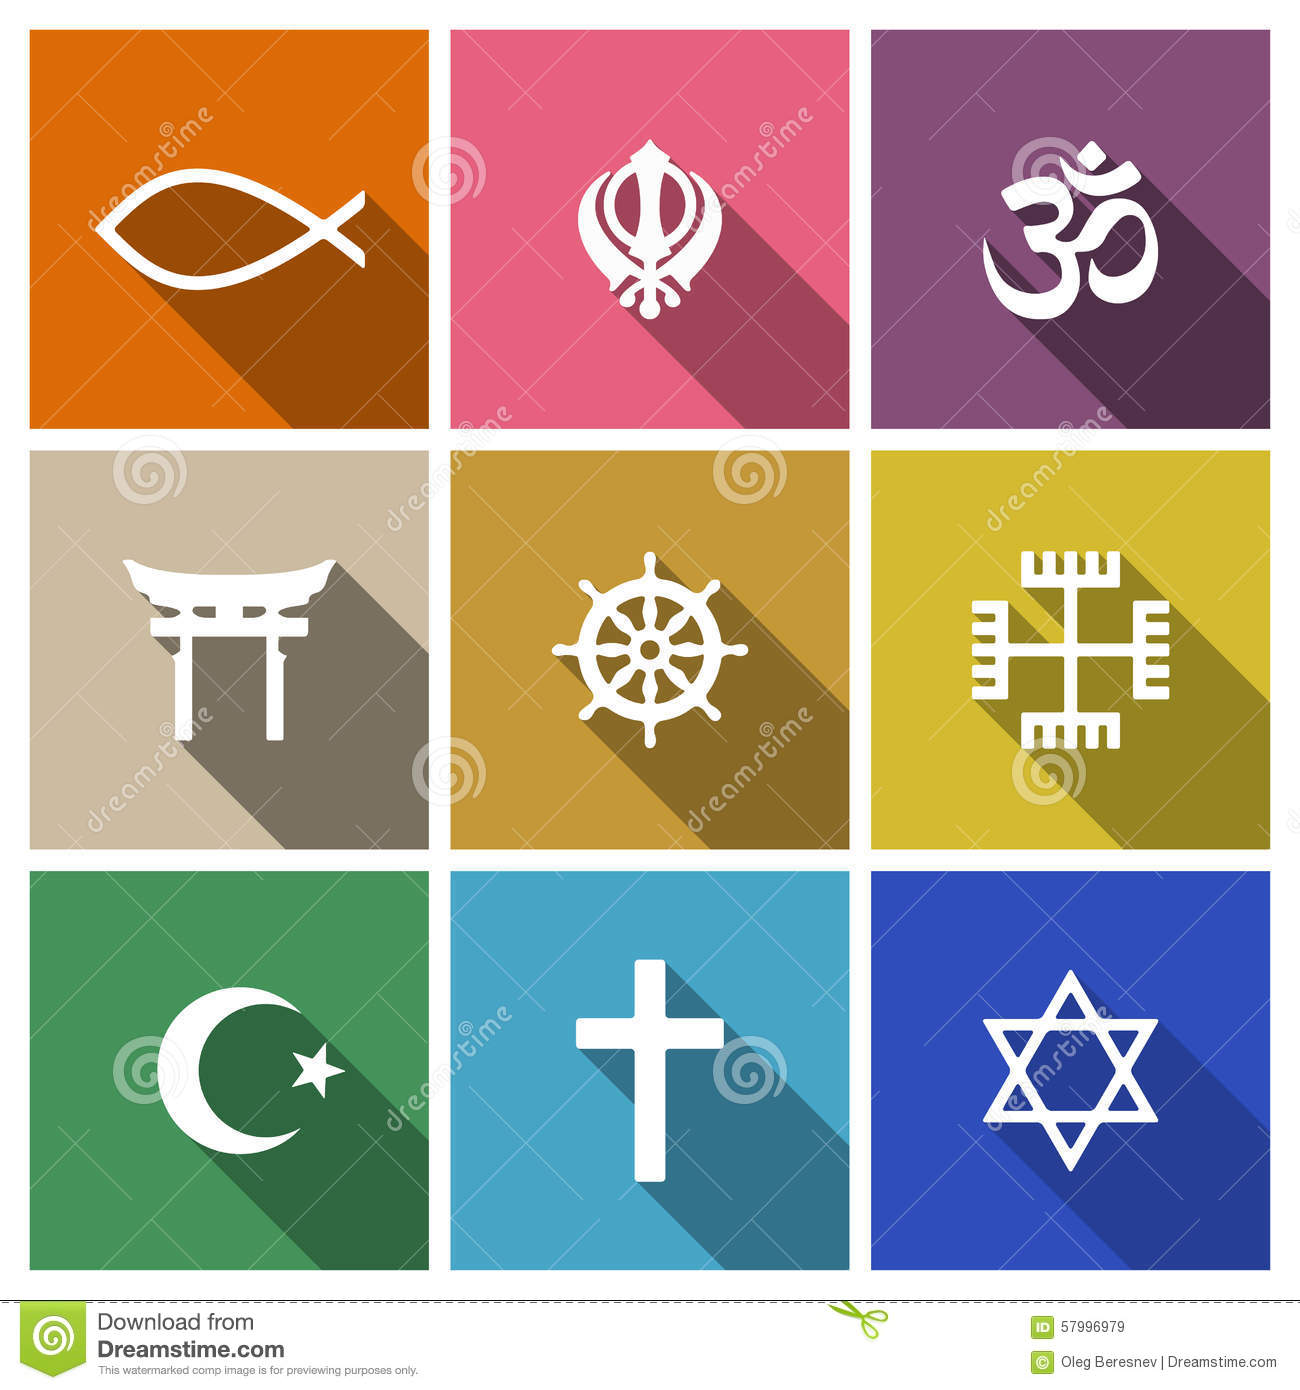 an overview of the concept of judaism and the religious culture of the jewish people This section is a guide to judaism, one of the oldest monotheistic religions, including festivals and celebrations, beliefs, worship, famous jewish people and history.